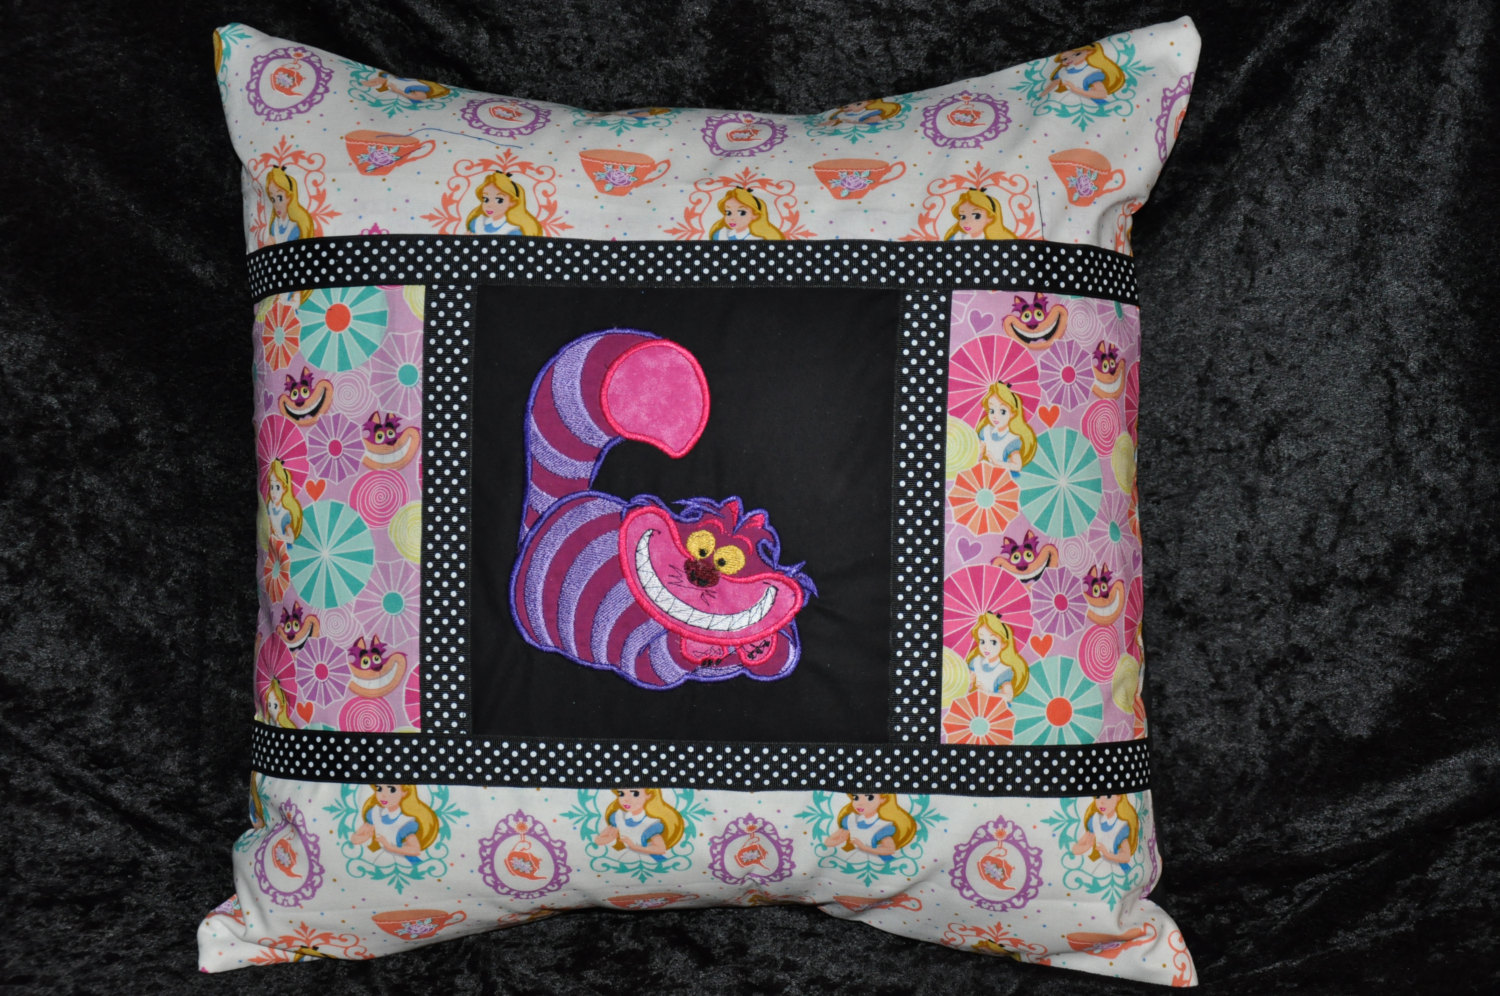 Cheshire cat embroidered toile decorative home dec pillow